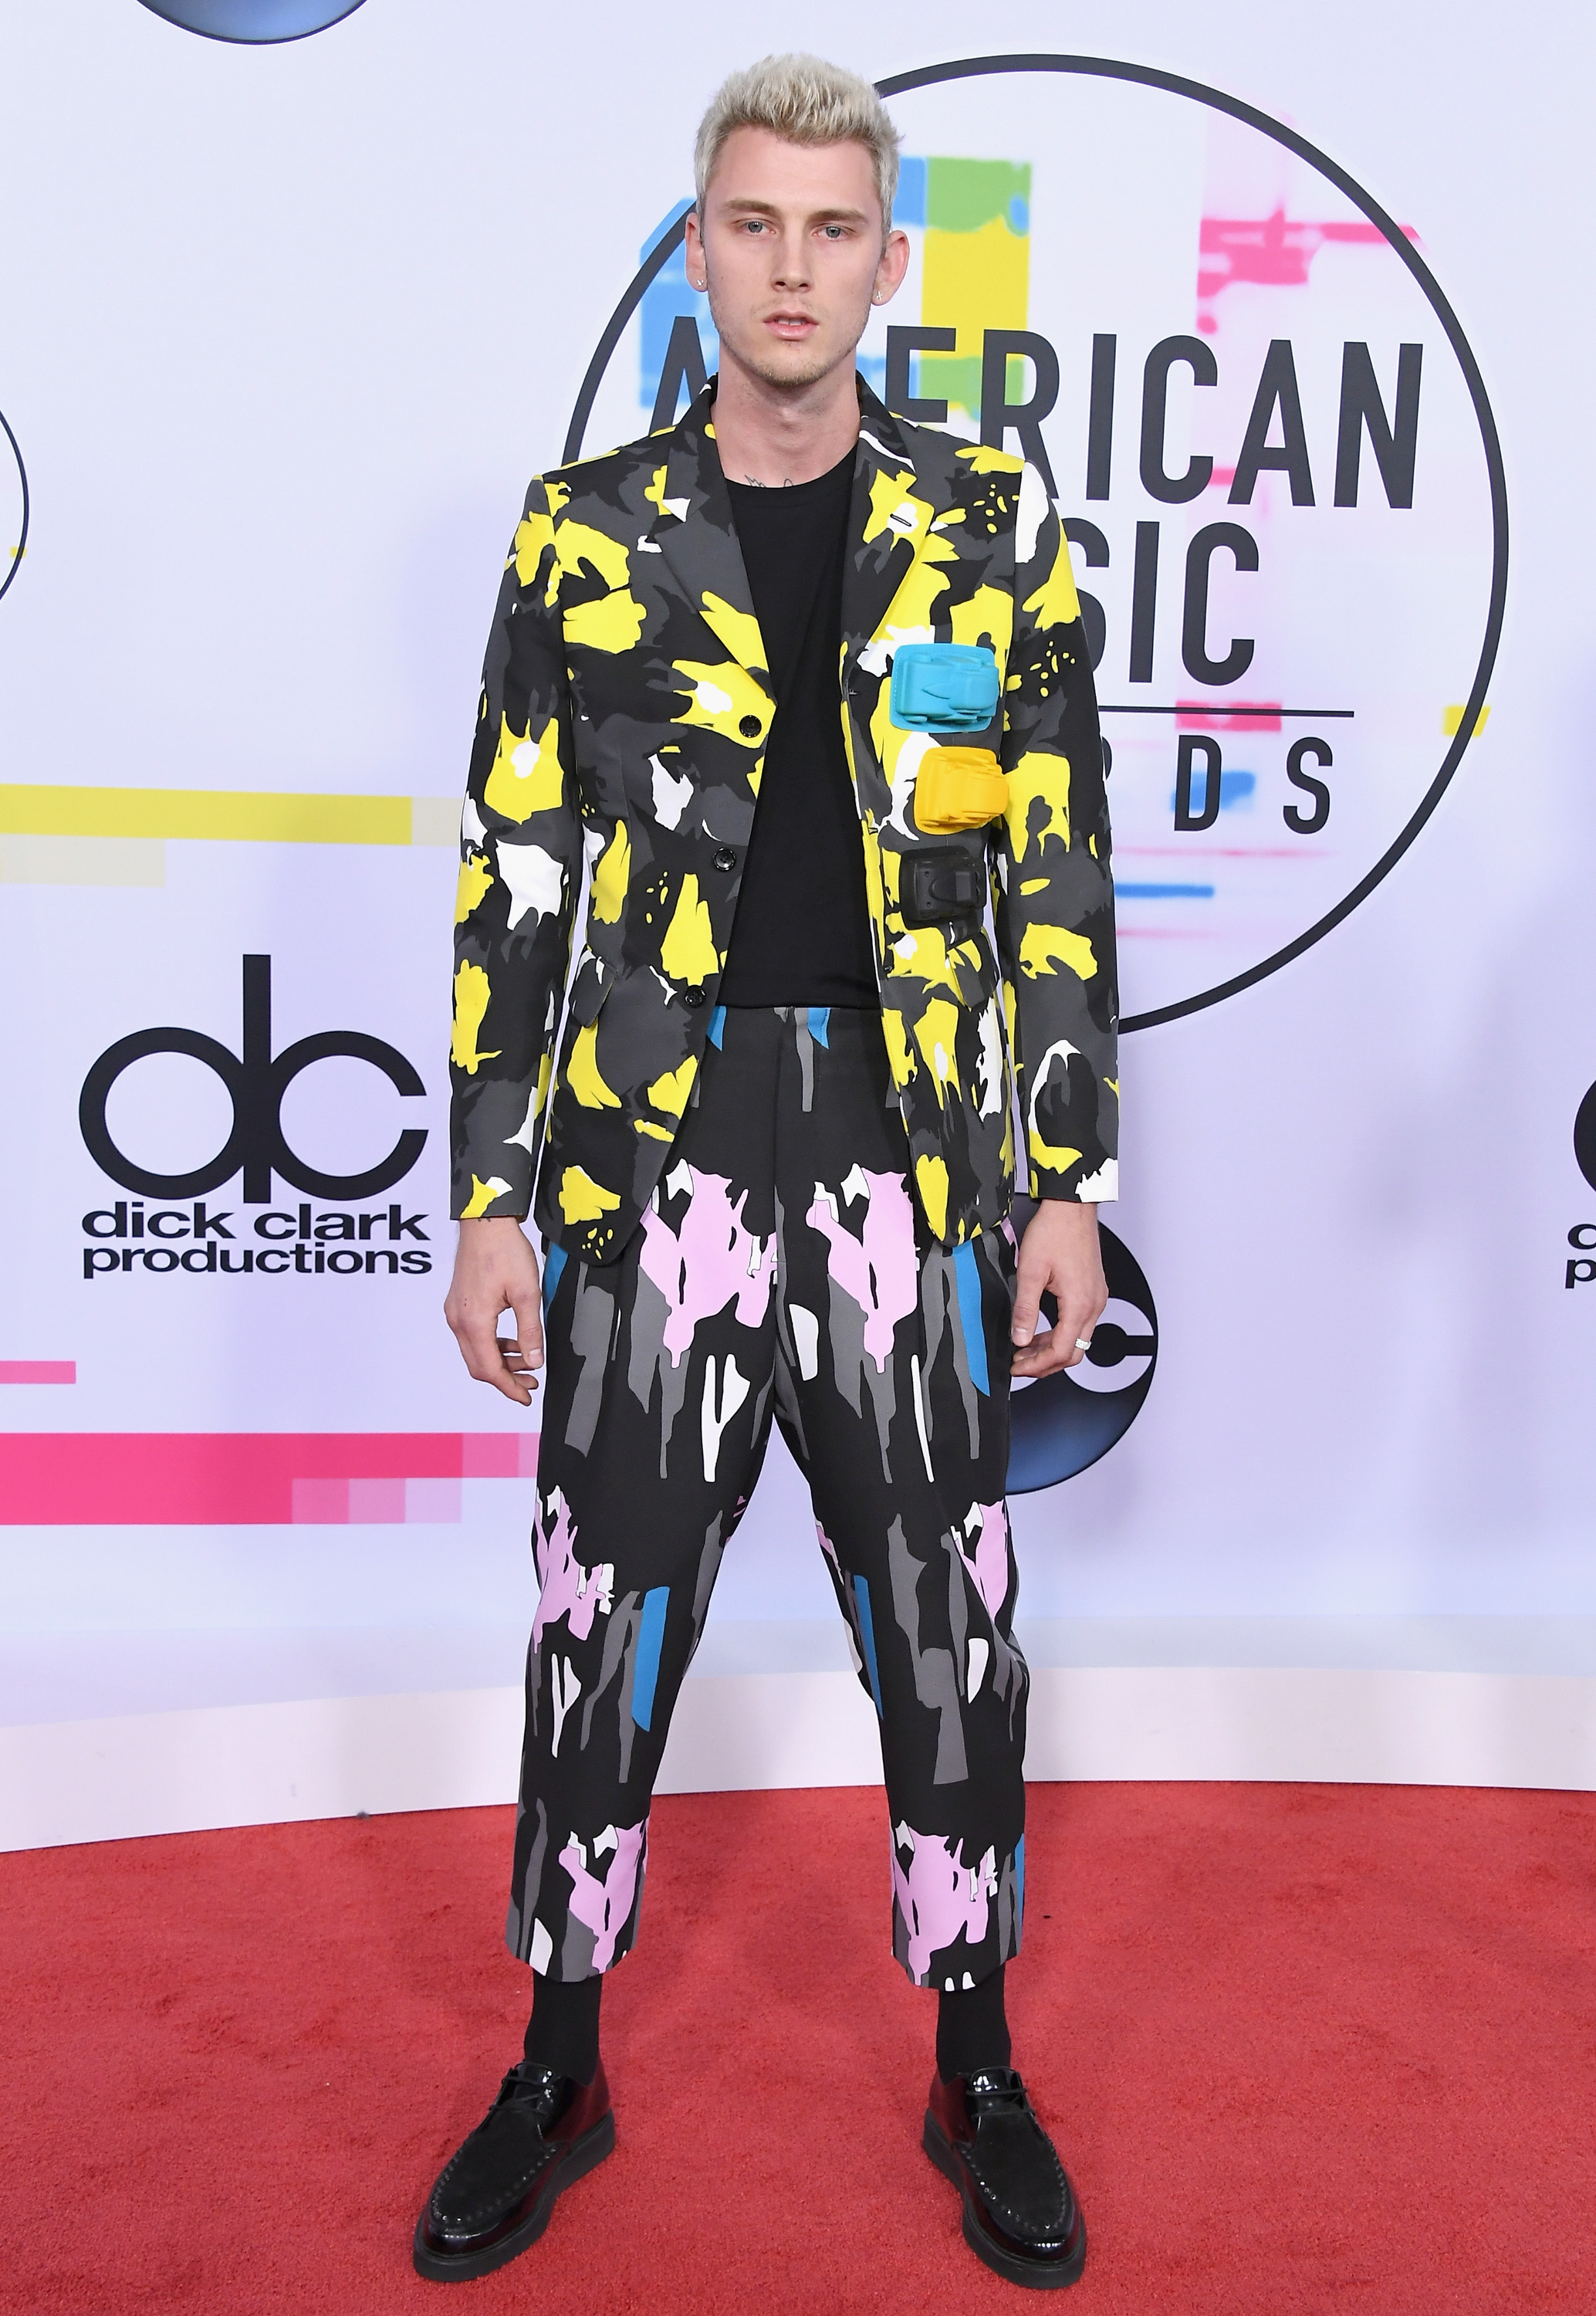 <div class='meta'><div class='origin-logo' data-origin='none'></div><span class='caption-text' data-credit='Steve Granitz/WireImage via Getty'>Machine Gun Kelly attends the 2017 American Music Awards at Microsoft Theater on November 19, 2017 in Los Angeles, California.  (Photo by Steve Granitz/WireImage)</span></div>